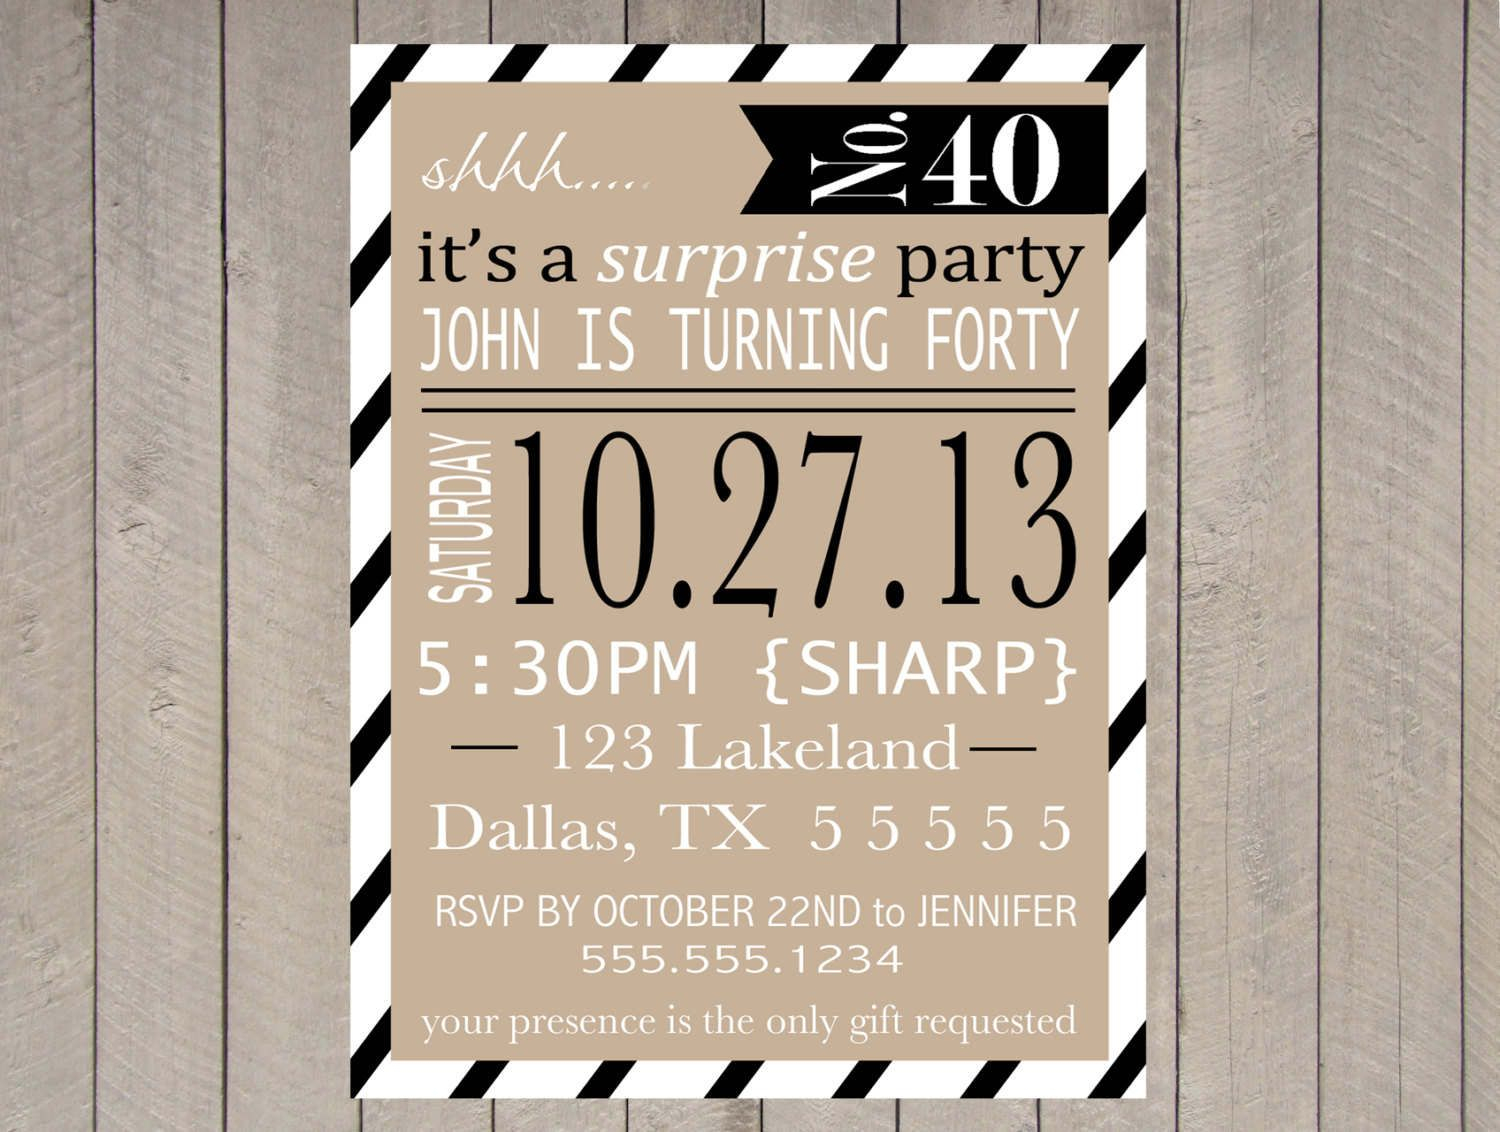 Free Printable Surprise Party Invitation Templates | Invitations - Free Printable Surprise 60Th Birthday Invitations